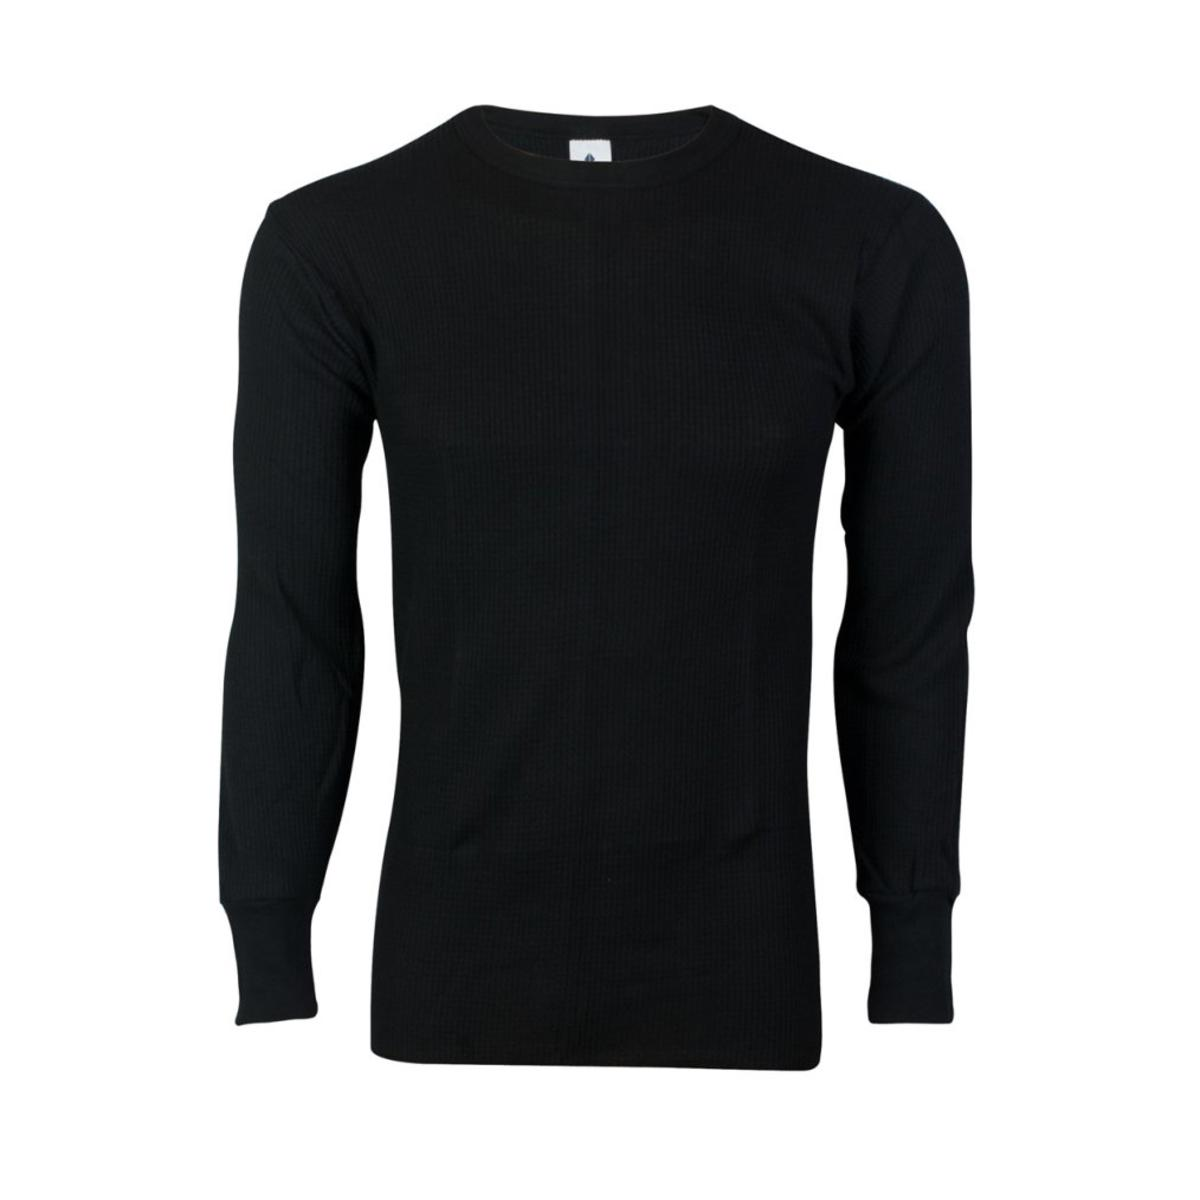 Indera Heavyweight Cotton Knit Thermal Long Underwear Shirt, Black by Indera Mills